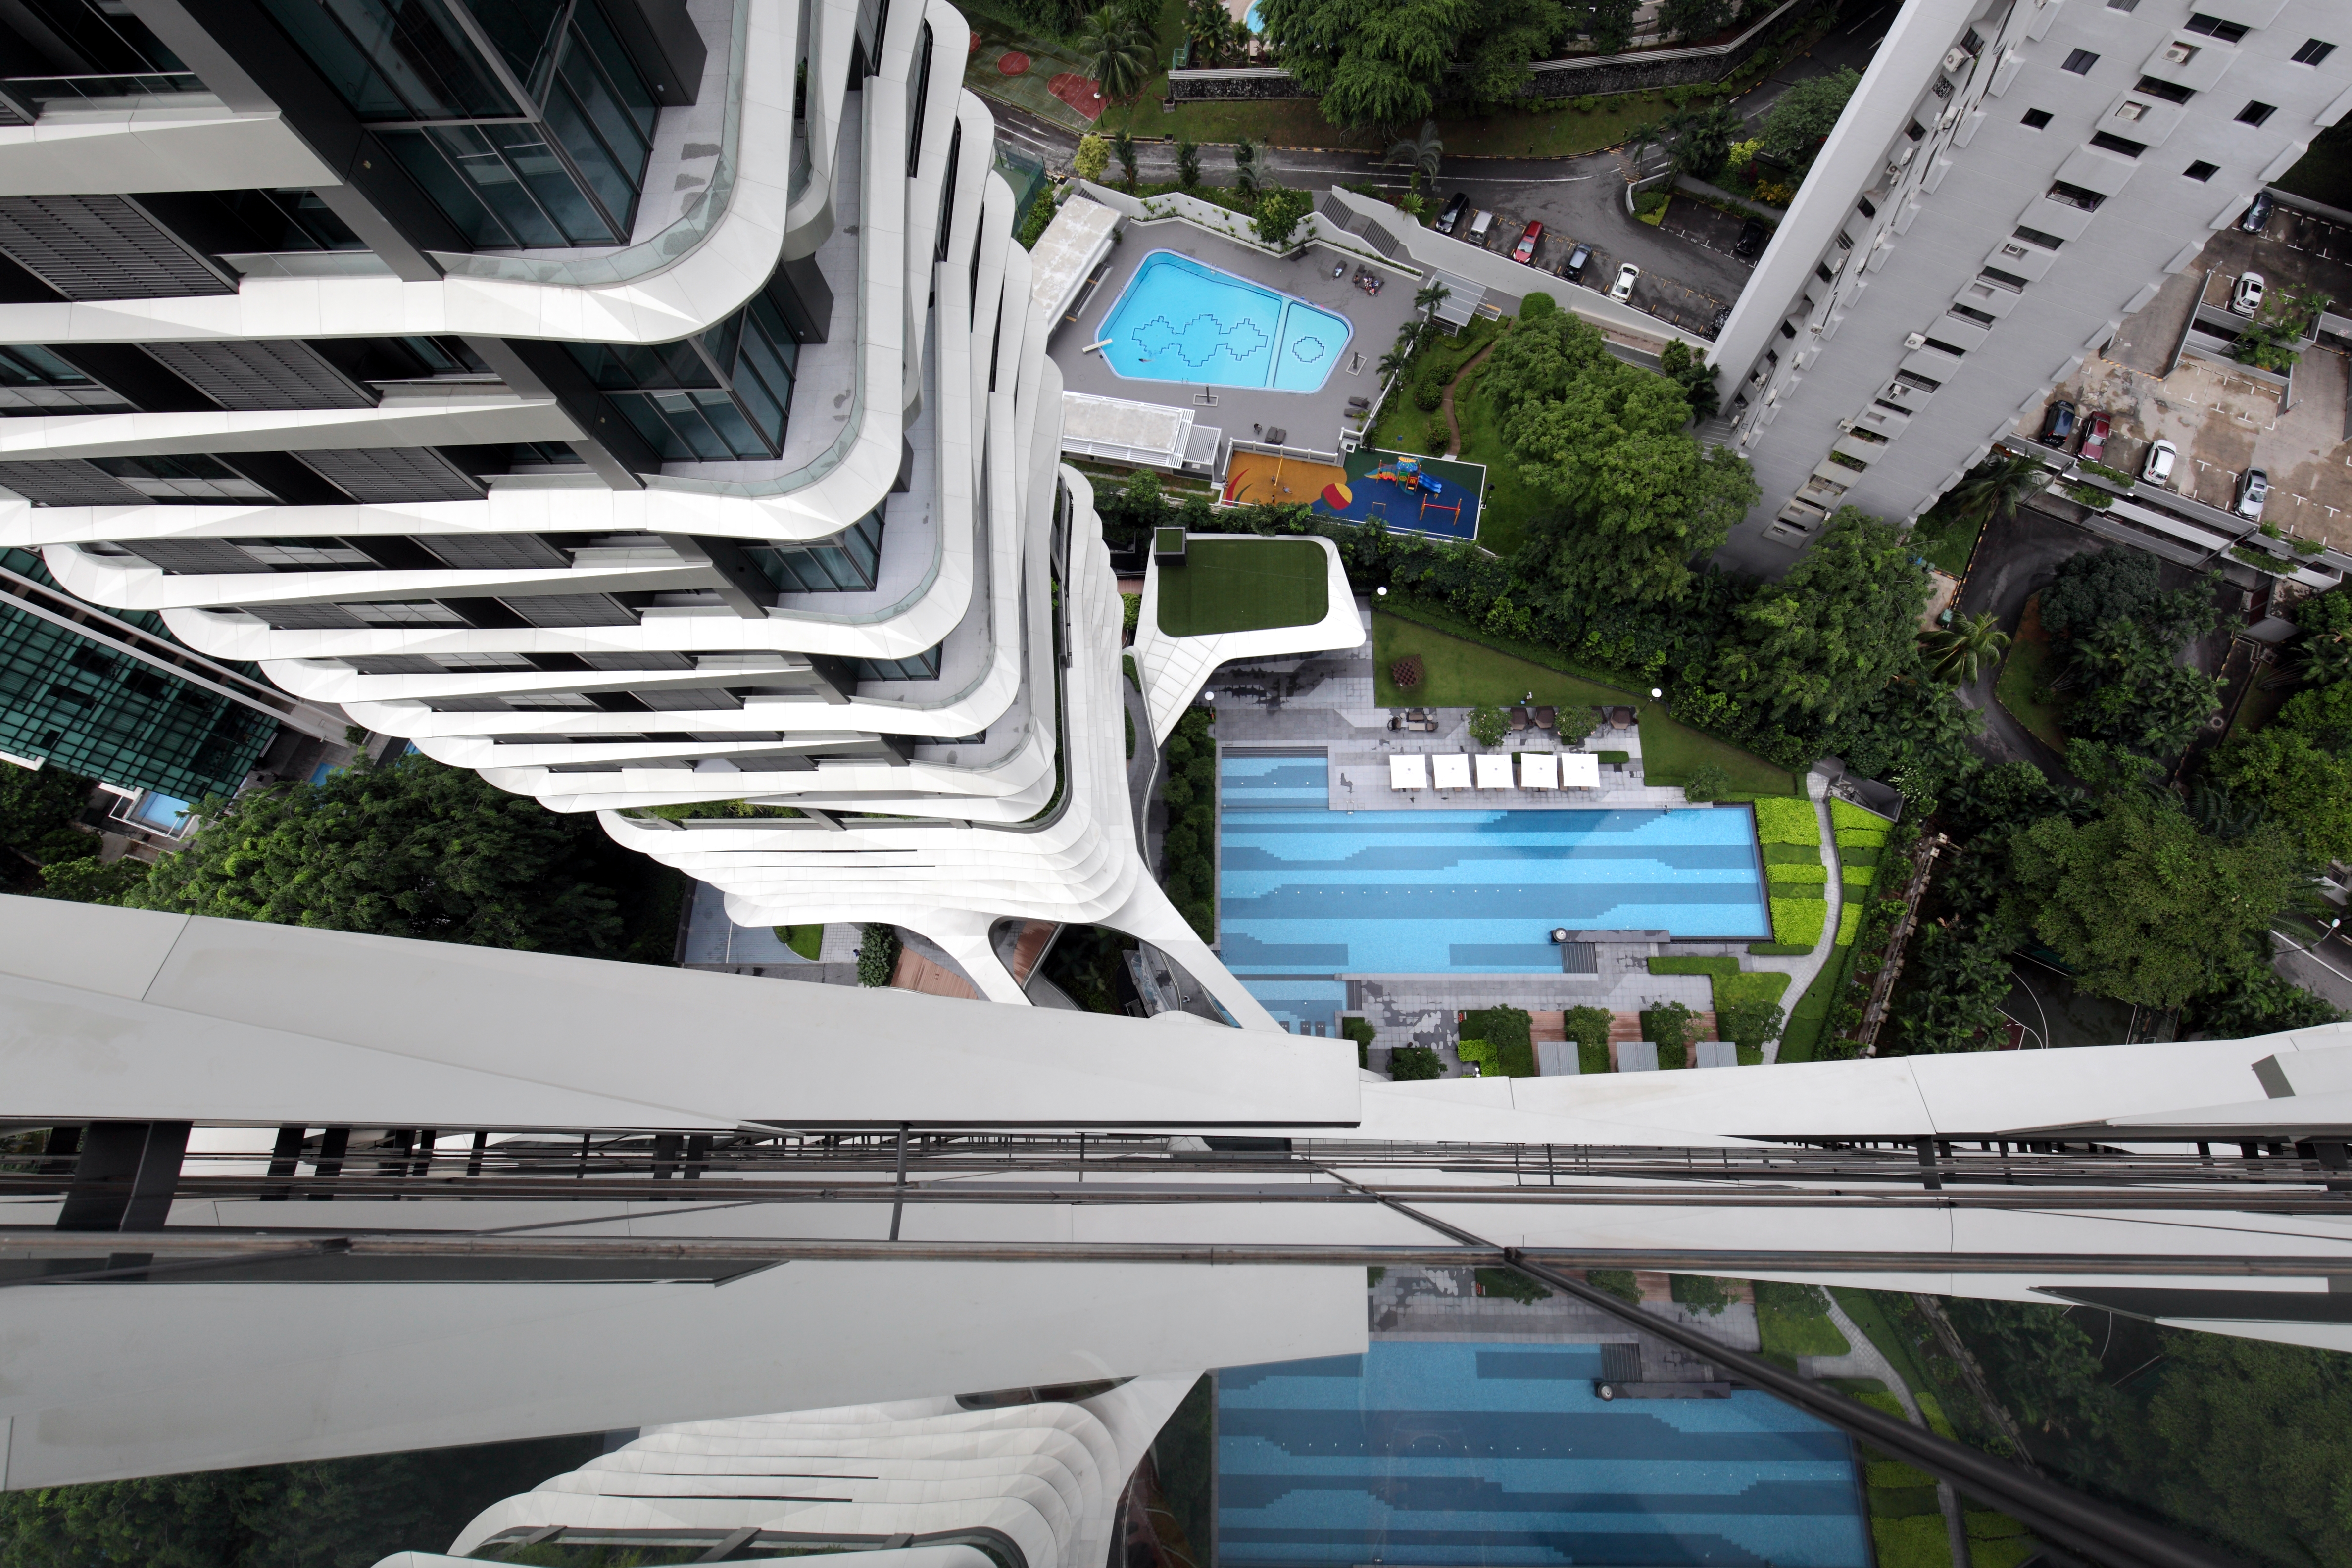 Located at Leonie Hill, New Futura is a stone's throw away from Orchard Road - EDGEPROP SINGAPORE